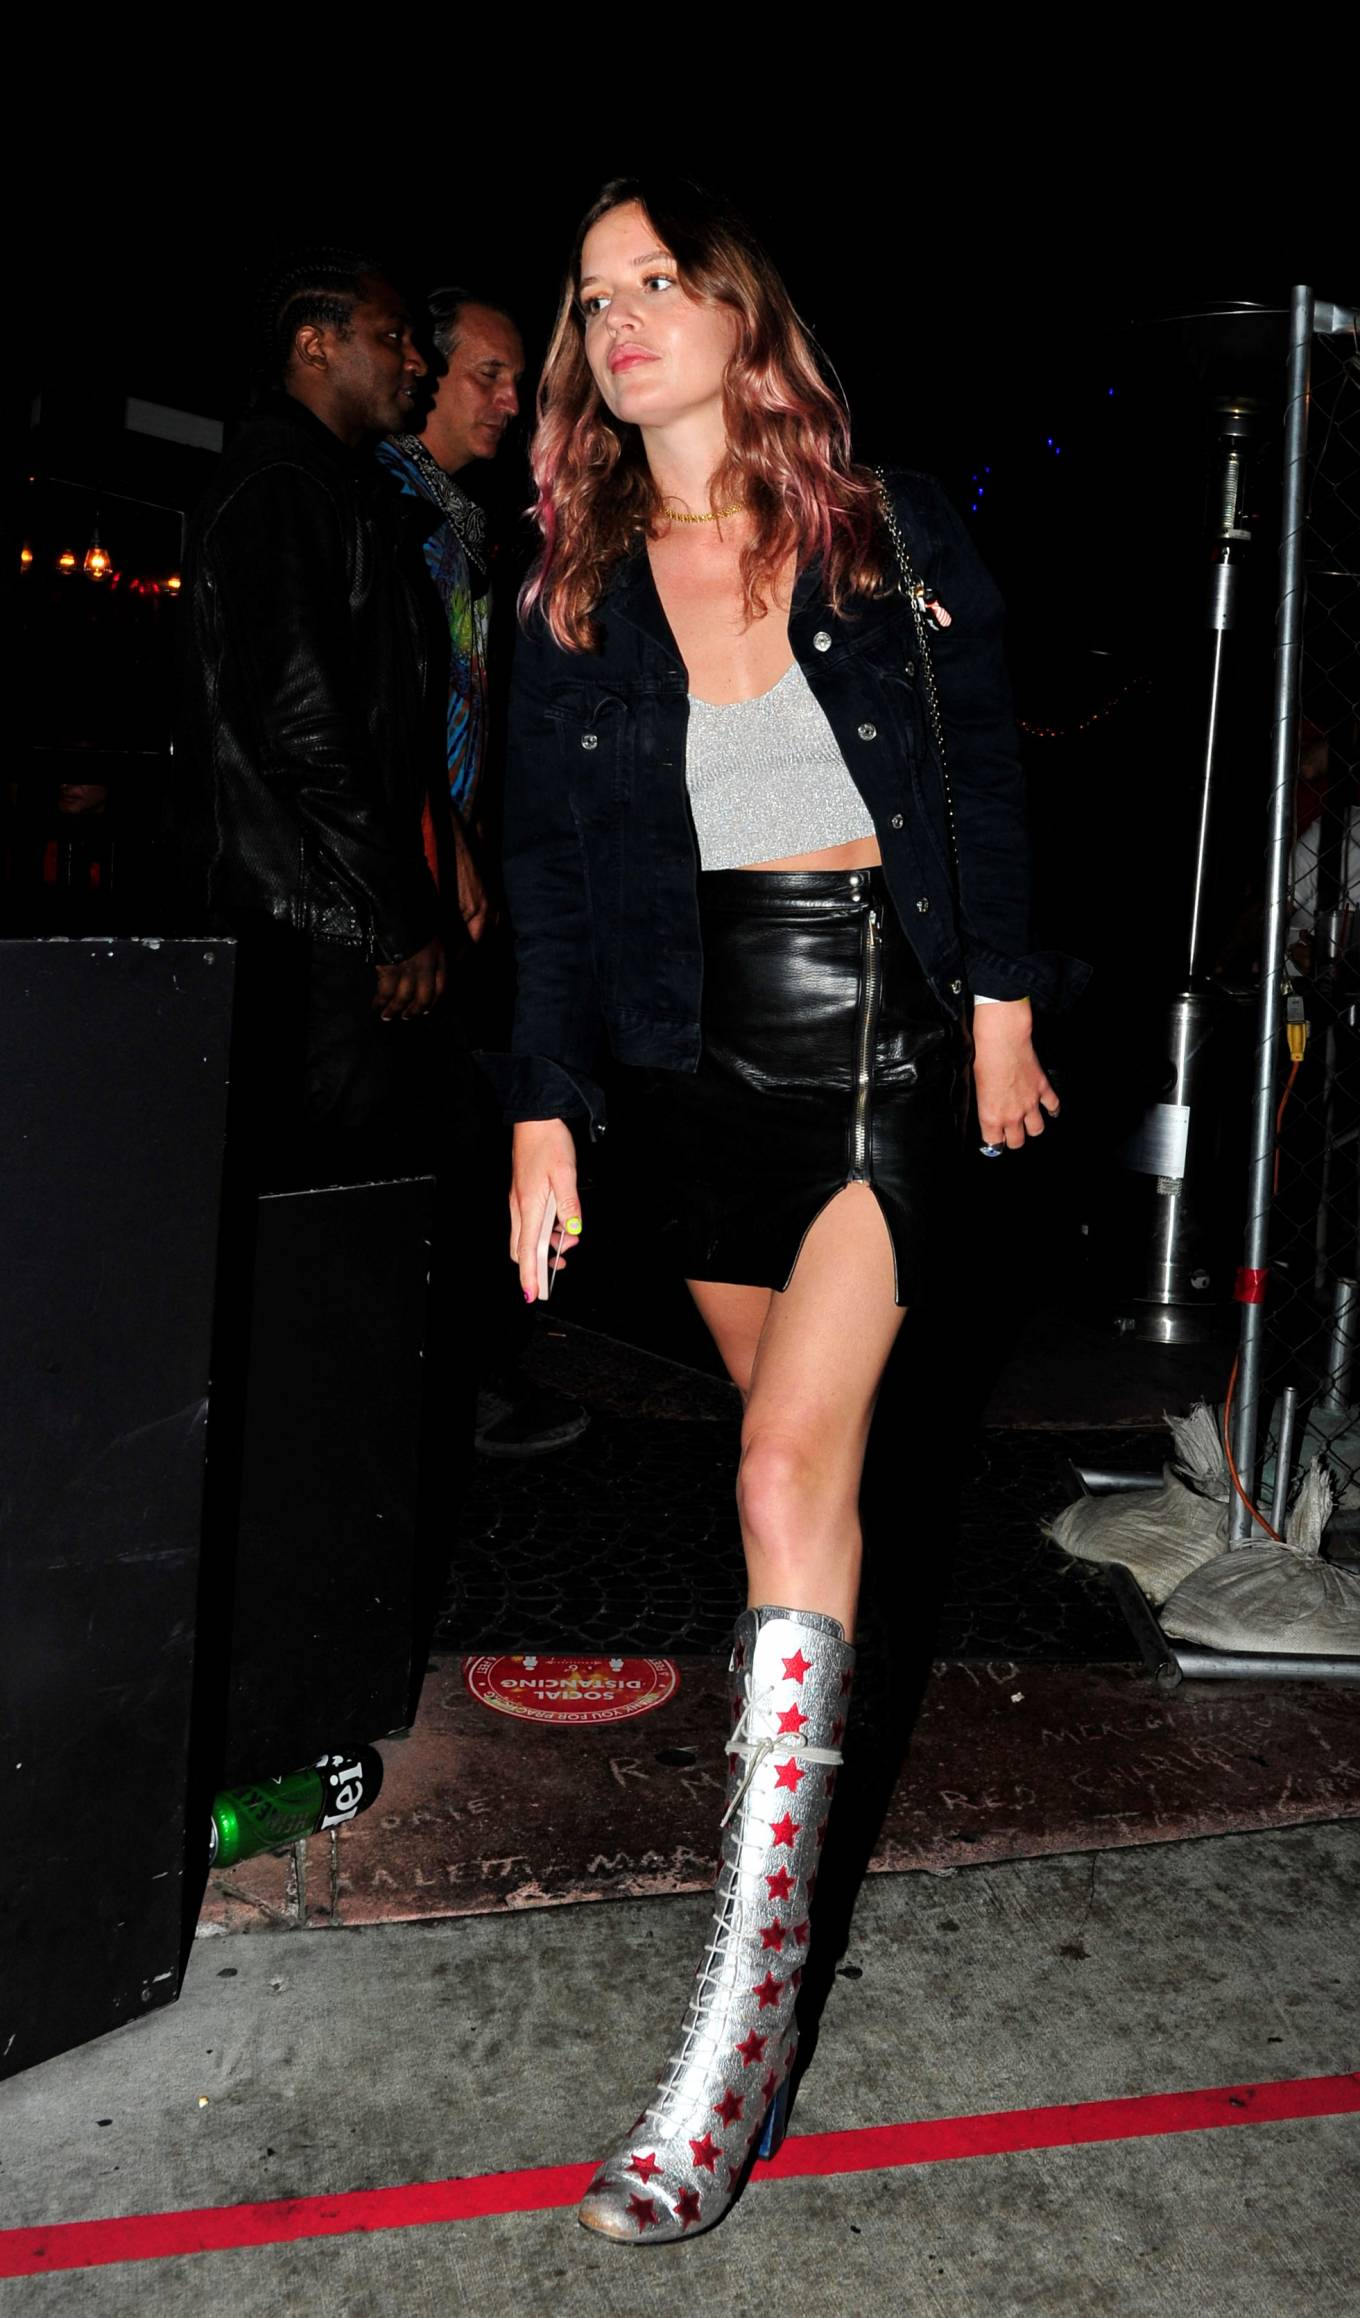 Stella Maxwell - With Georgia May Jagger party at the Rainbow Bar and Grill in West Hollywood